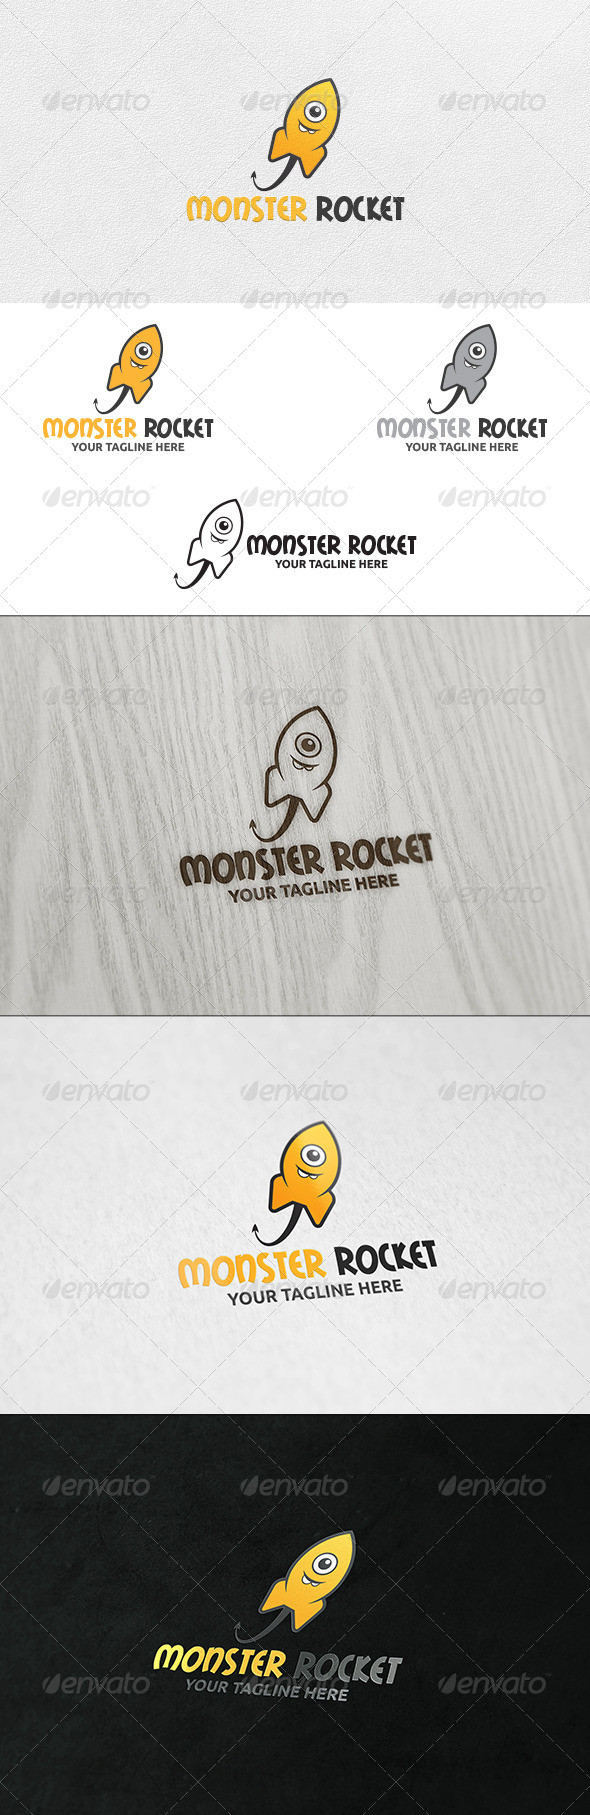 Monster Rocket - Logo Template - Animals Logo Templates